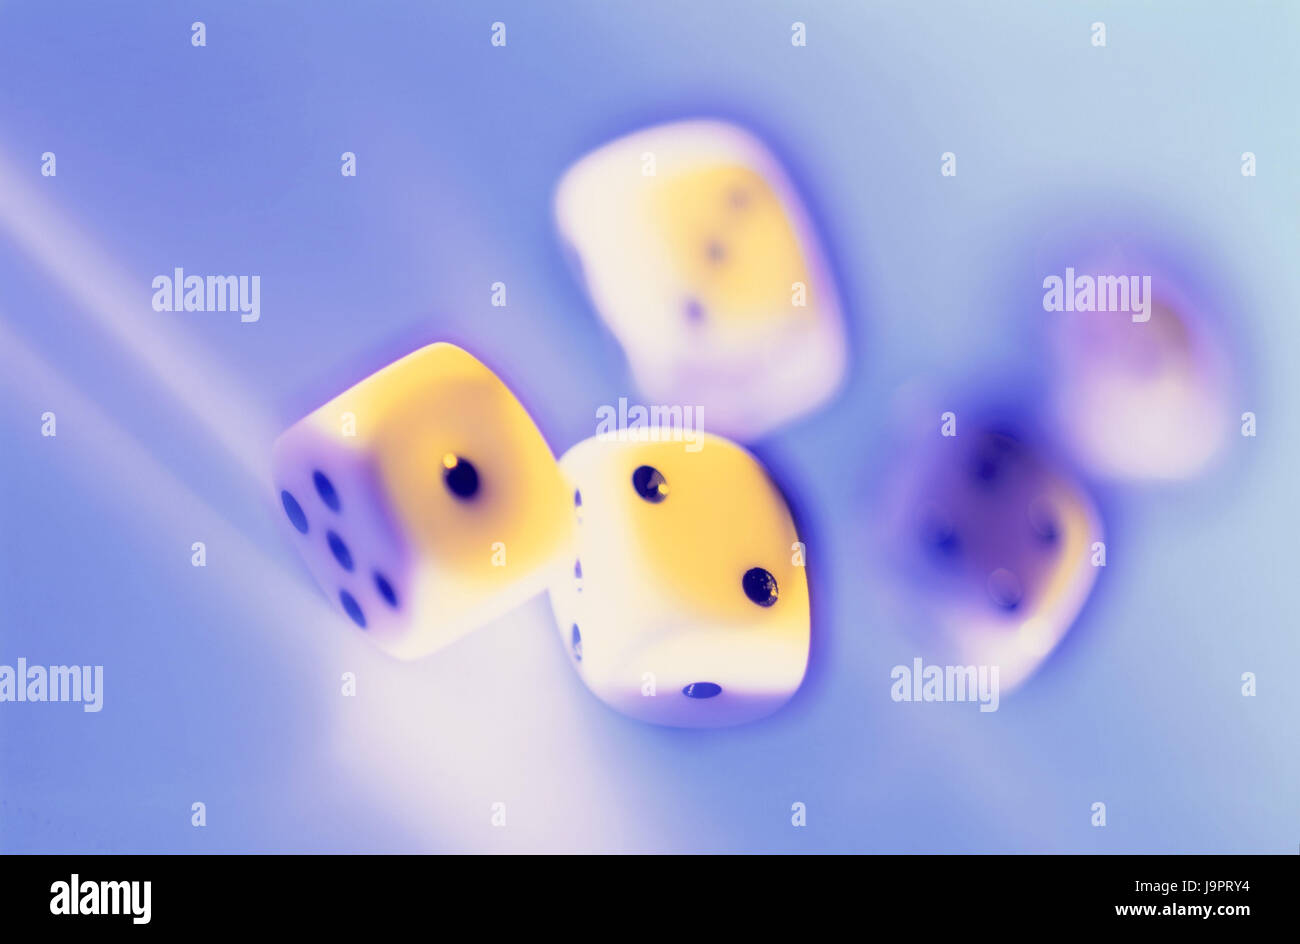 Game of chance,cube,blur,game,craps,play,gamble,game cubes,throw dice,five,luck,pitch,capture,lose,number,fall,motion,studio, - Stock Image